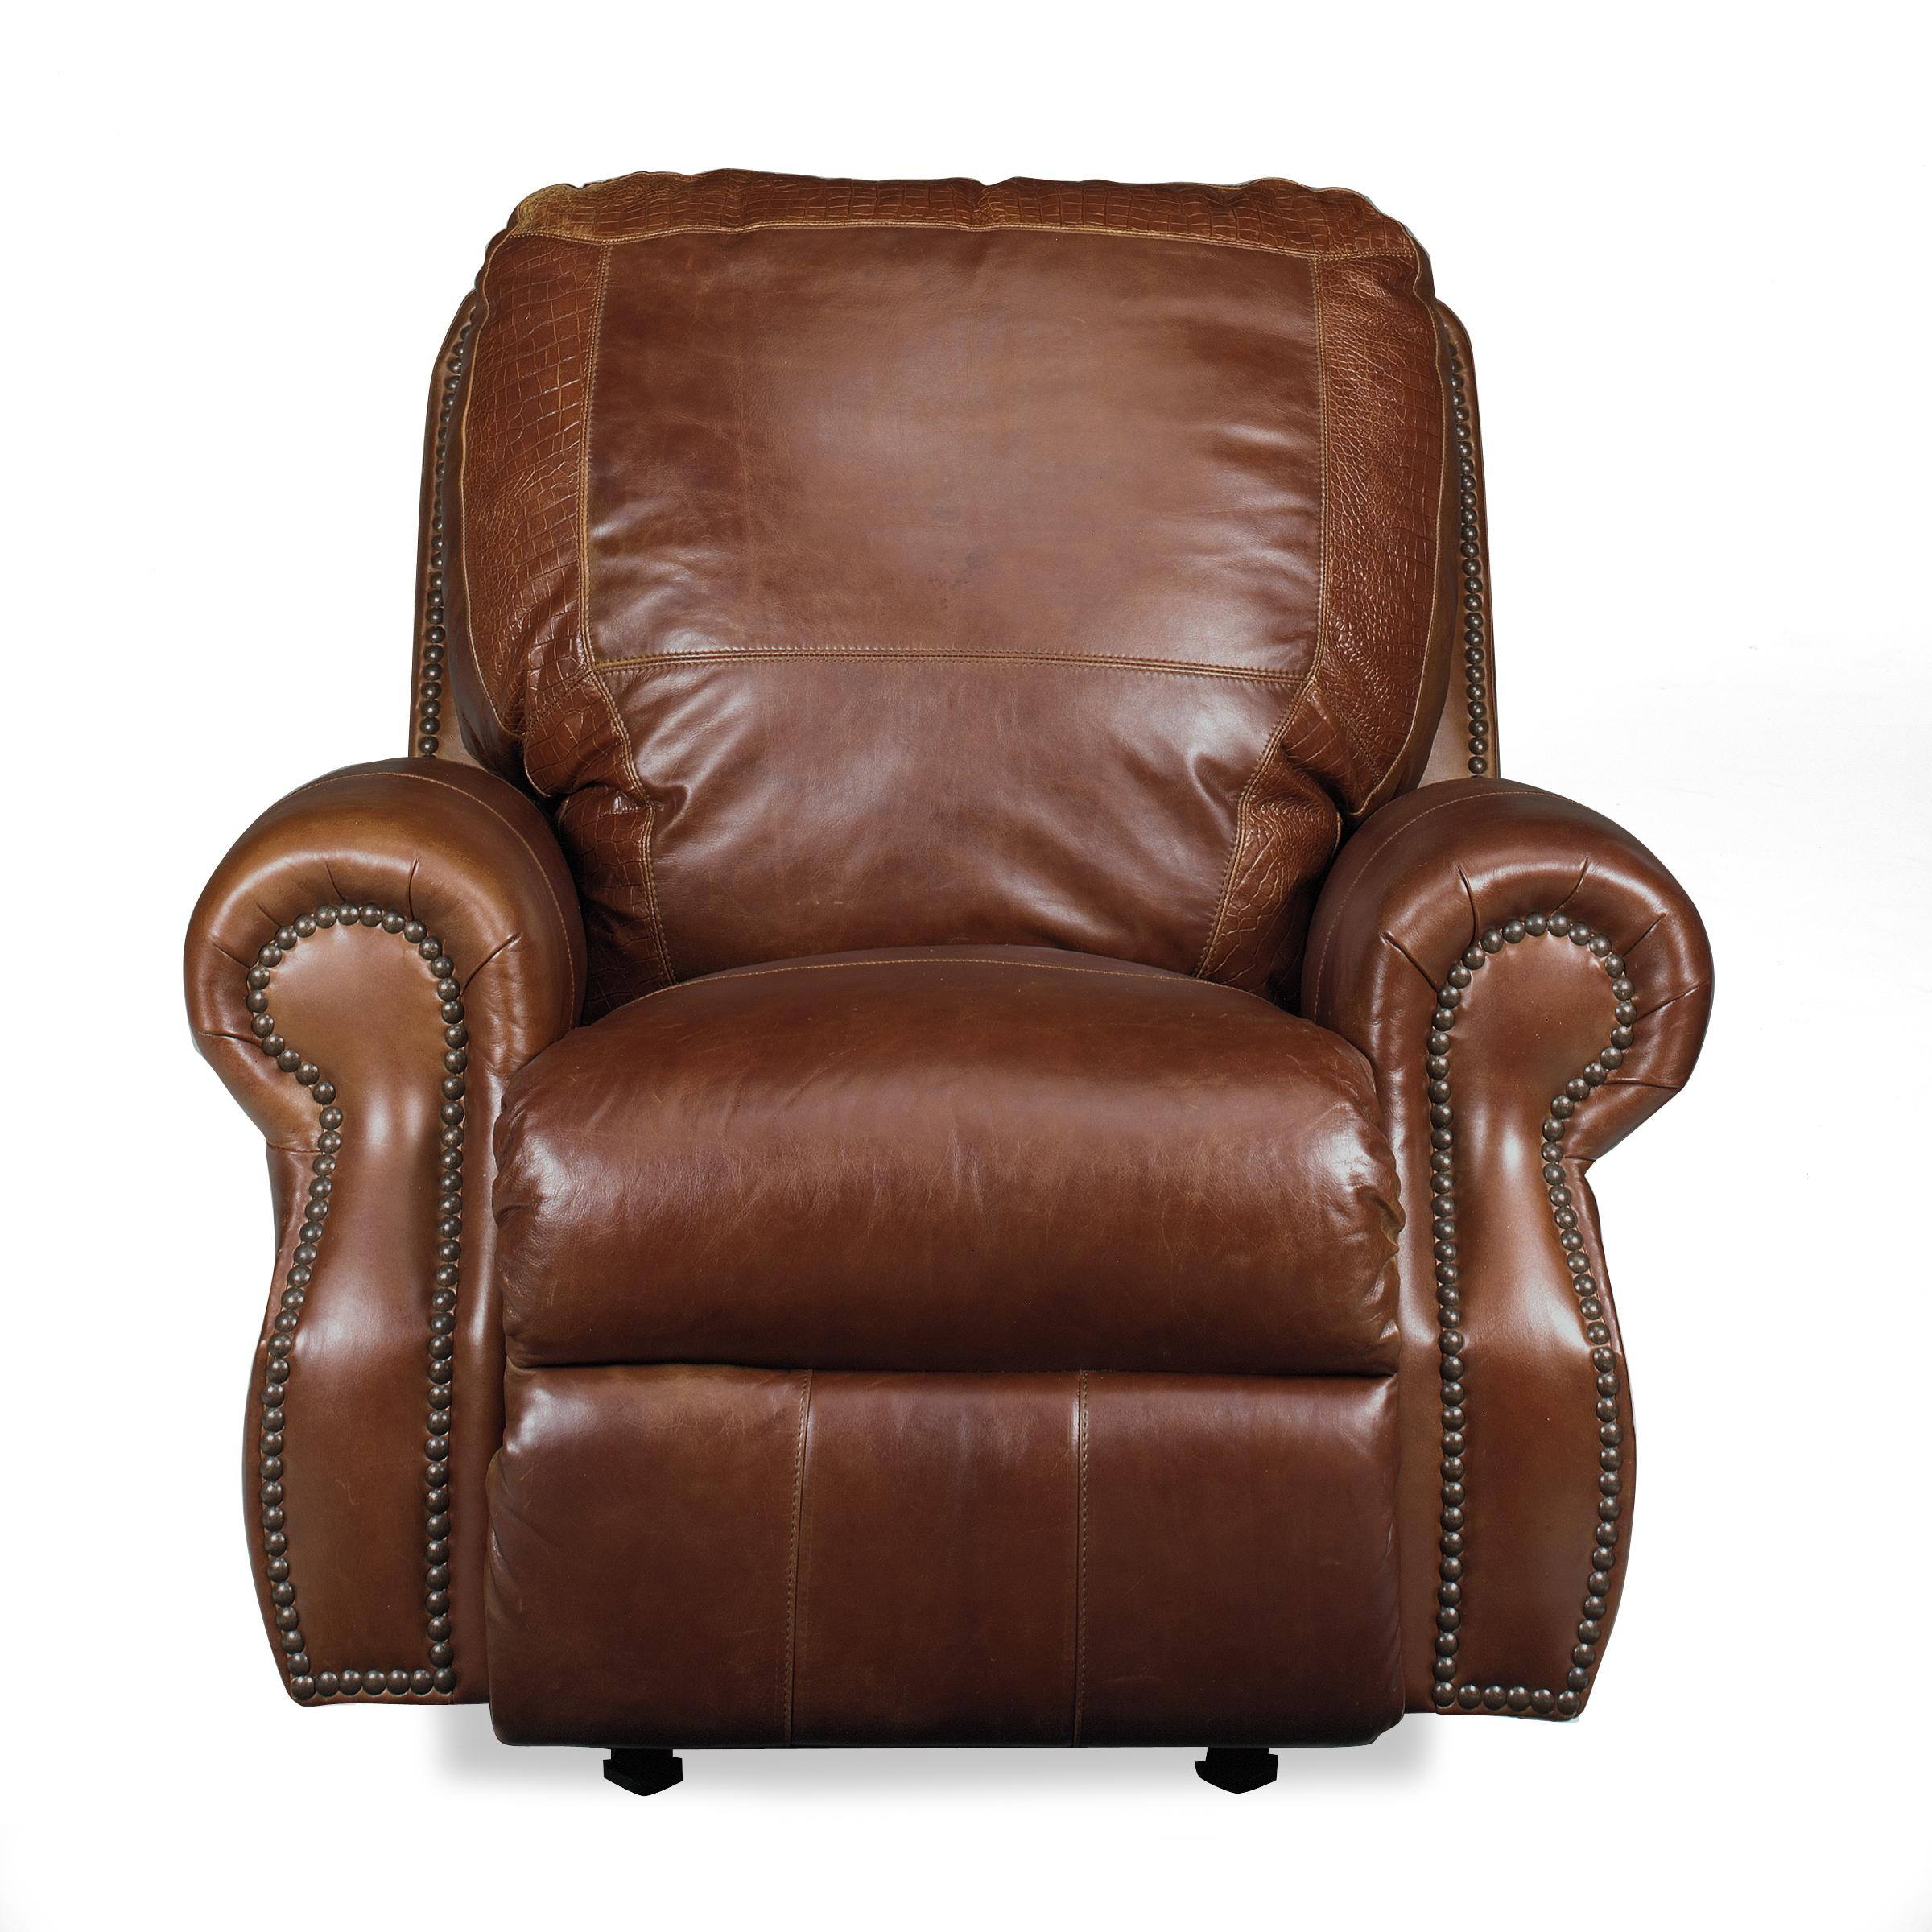 USA Premium Leather 9055 All Leather Recliner Miskelly Furniture